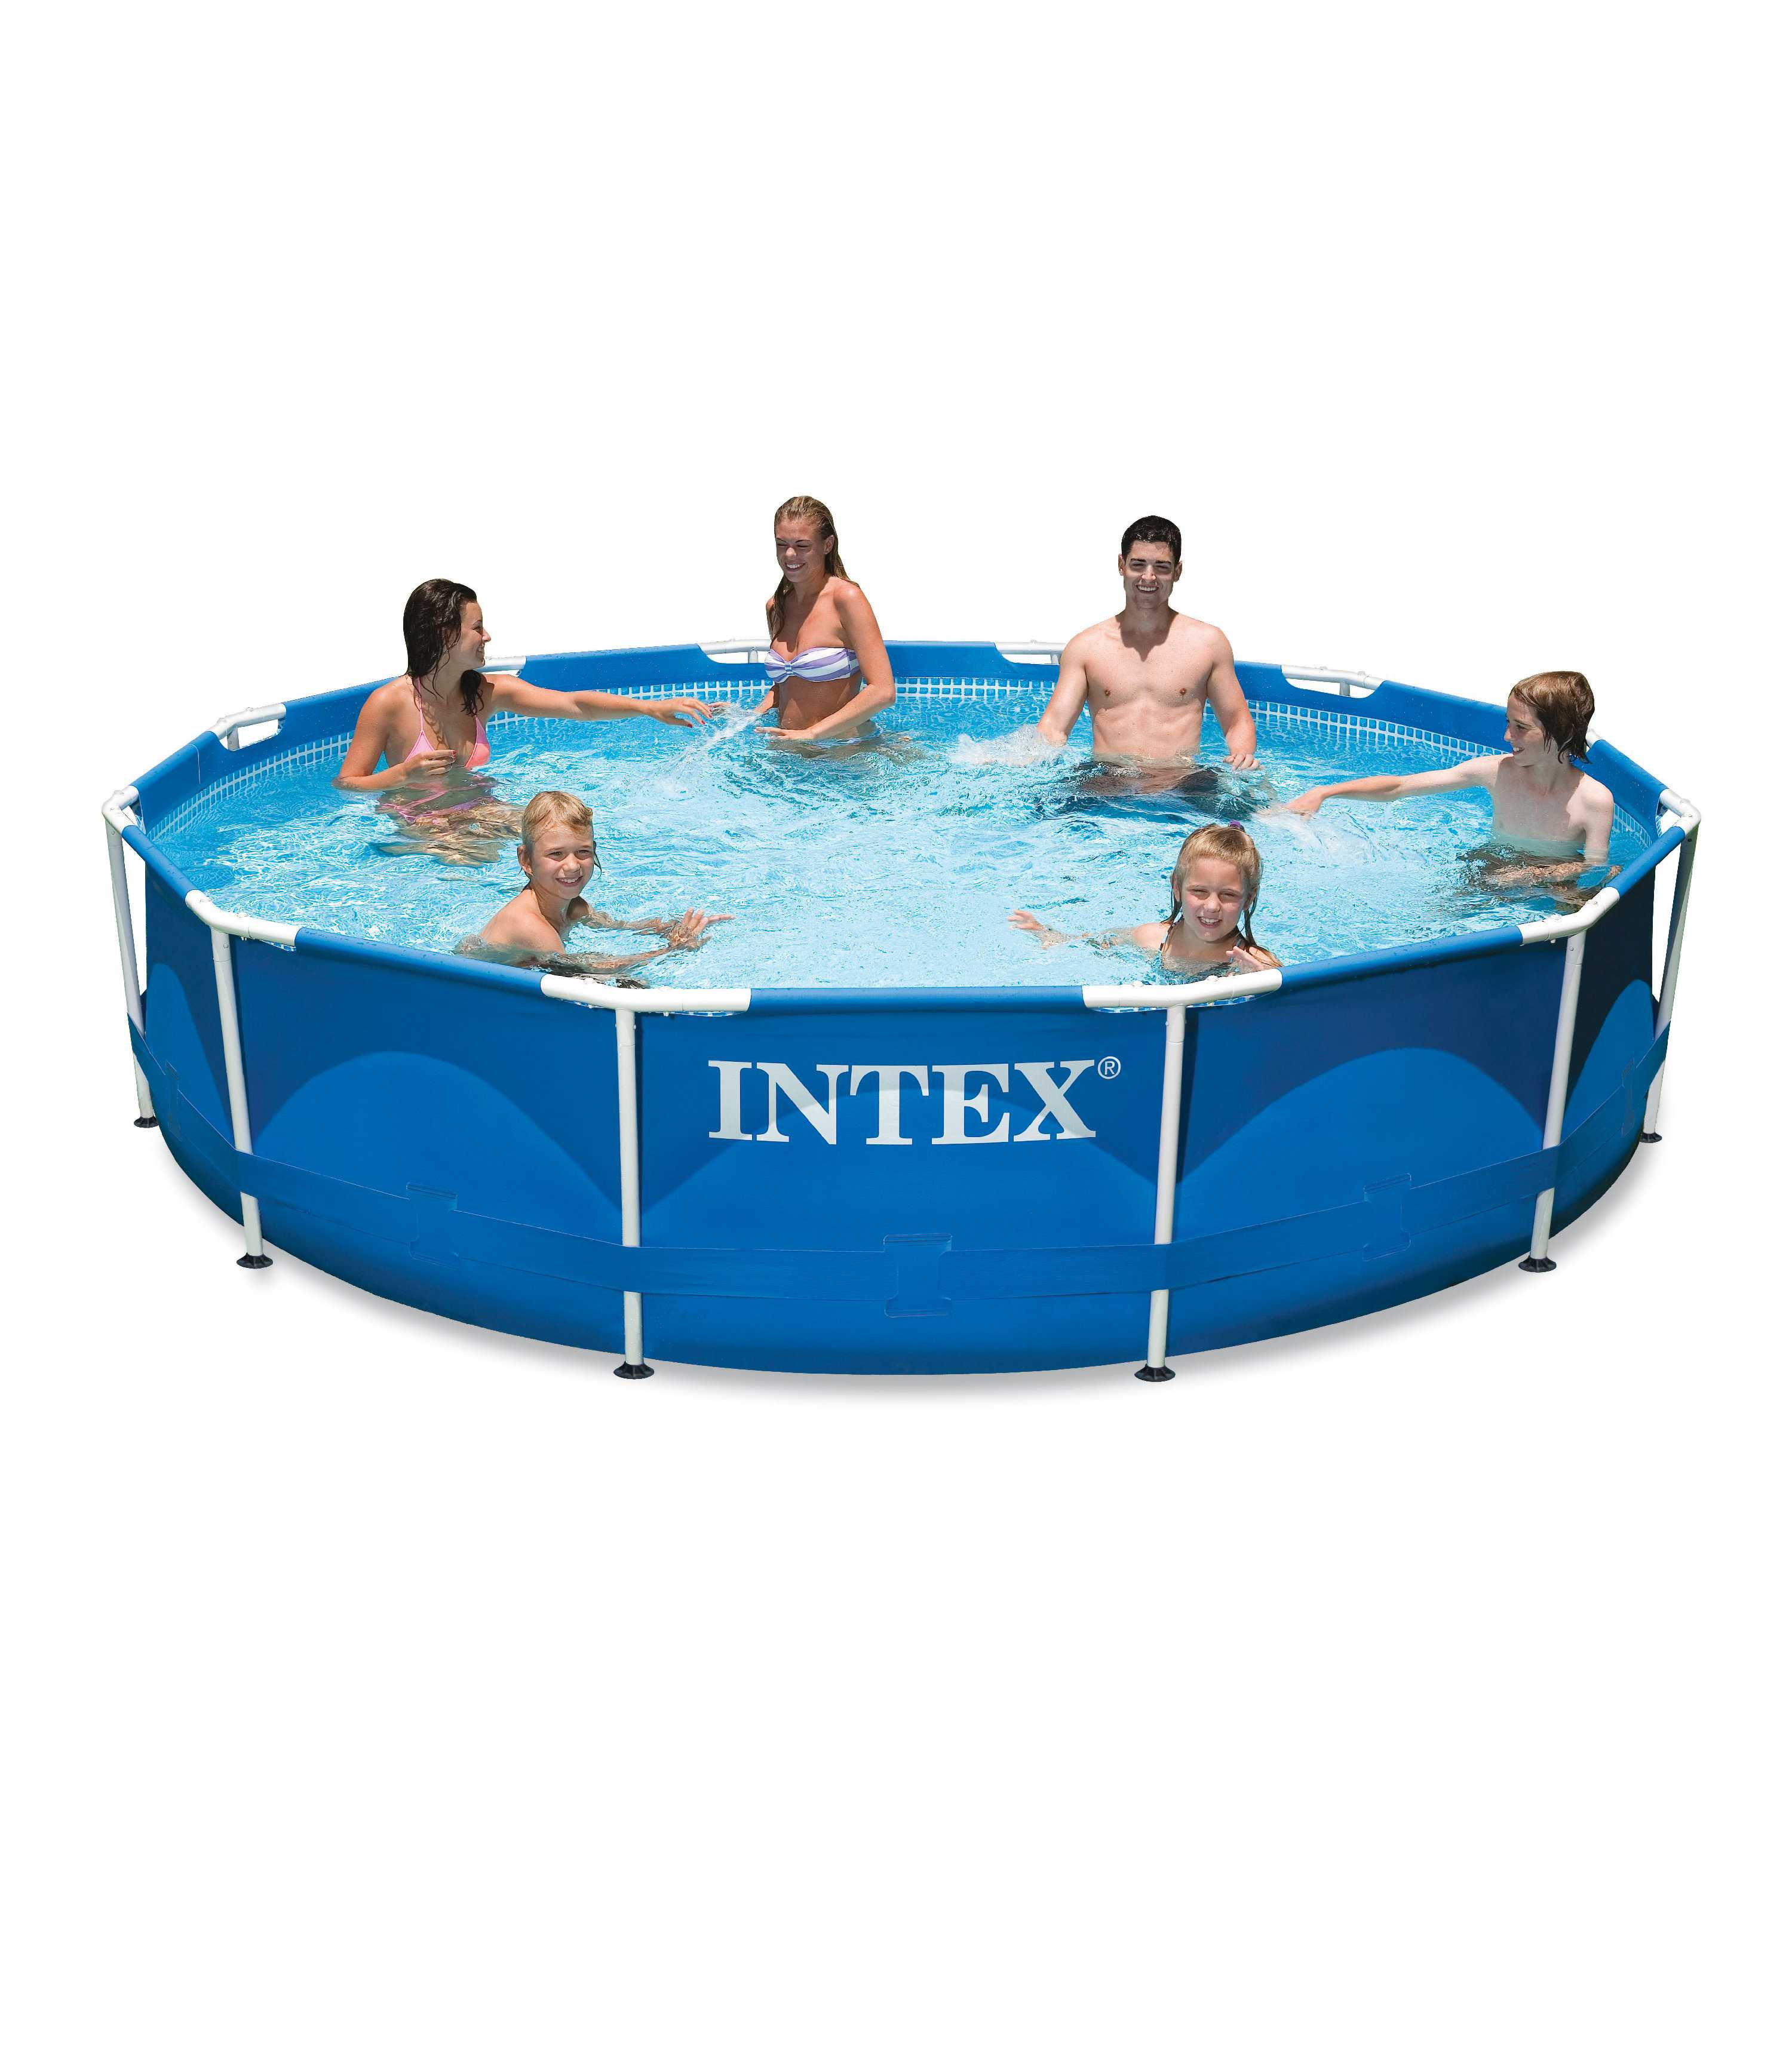 Scaffold Round Pool For Garden Leisure Summer For Summer Size 366x76 Cm, 6503 L, Intex Metal Frame, Item No. 28212